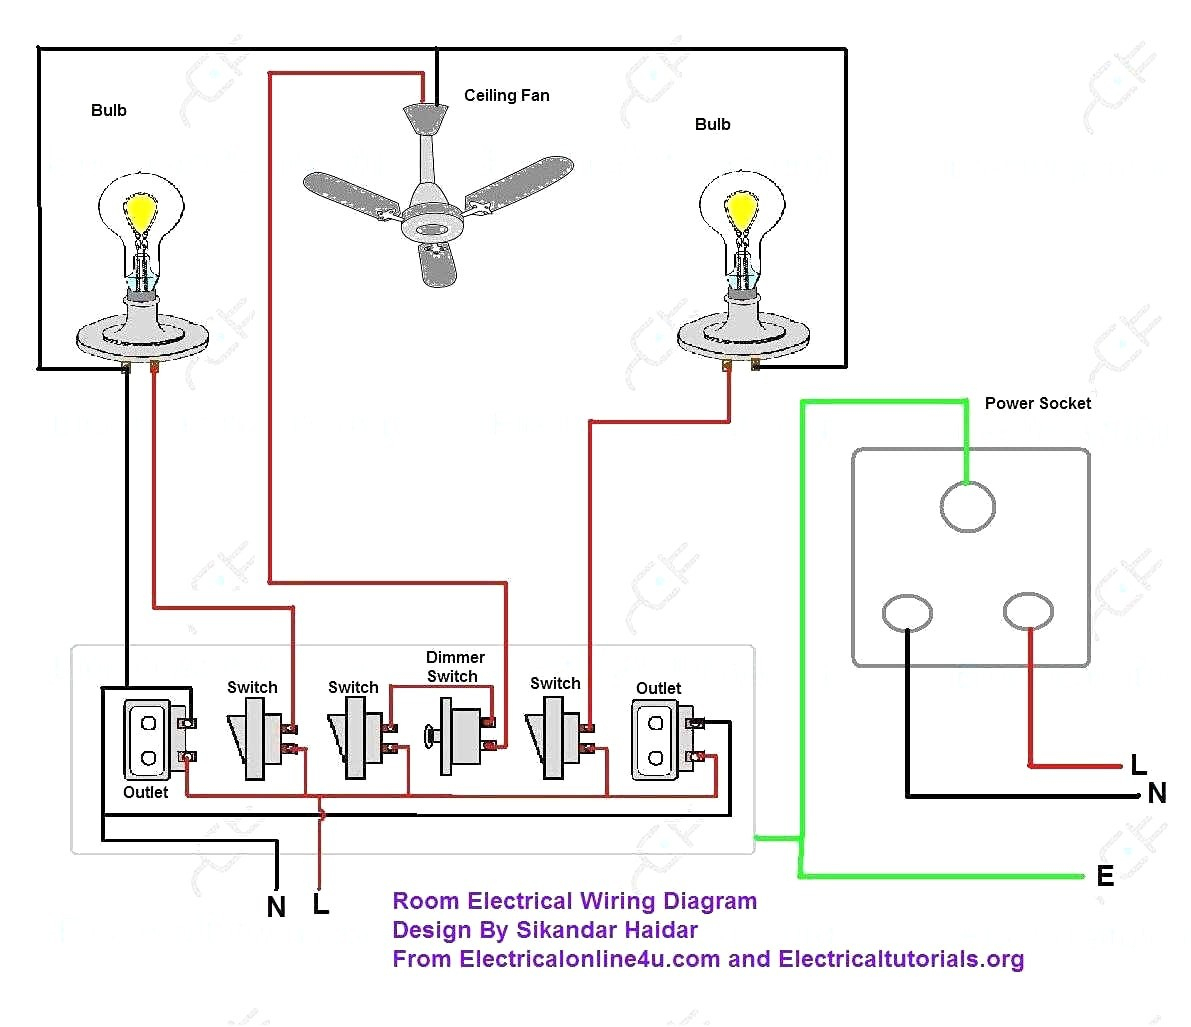 Electrical Room Wiring Diagram - Wiring Diagrams Thumbs - Residential Wiring Diagram